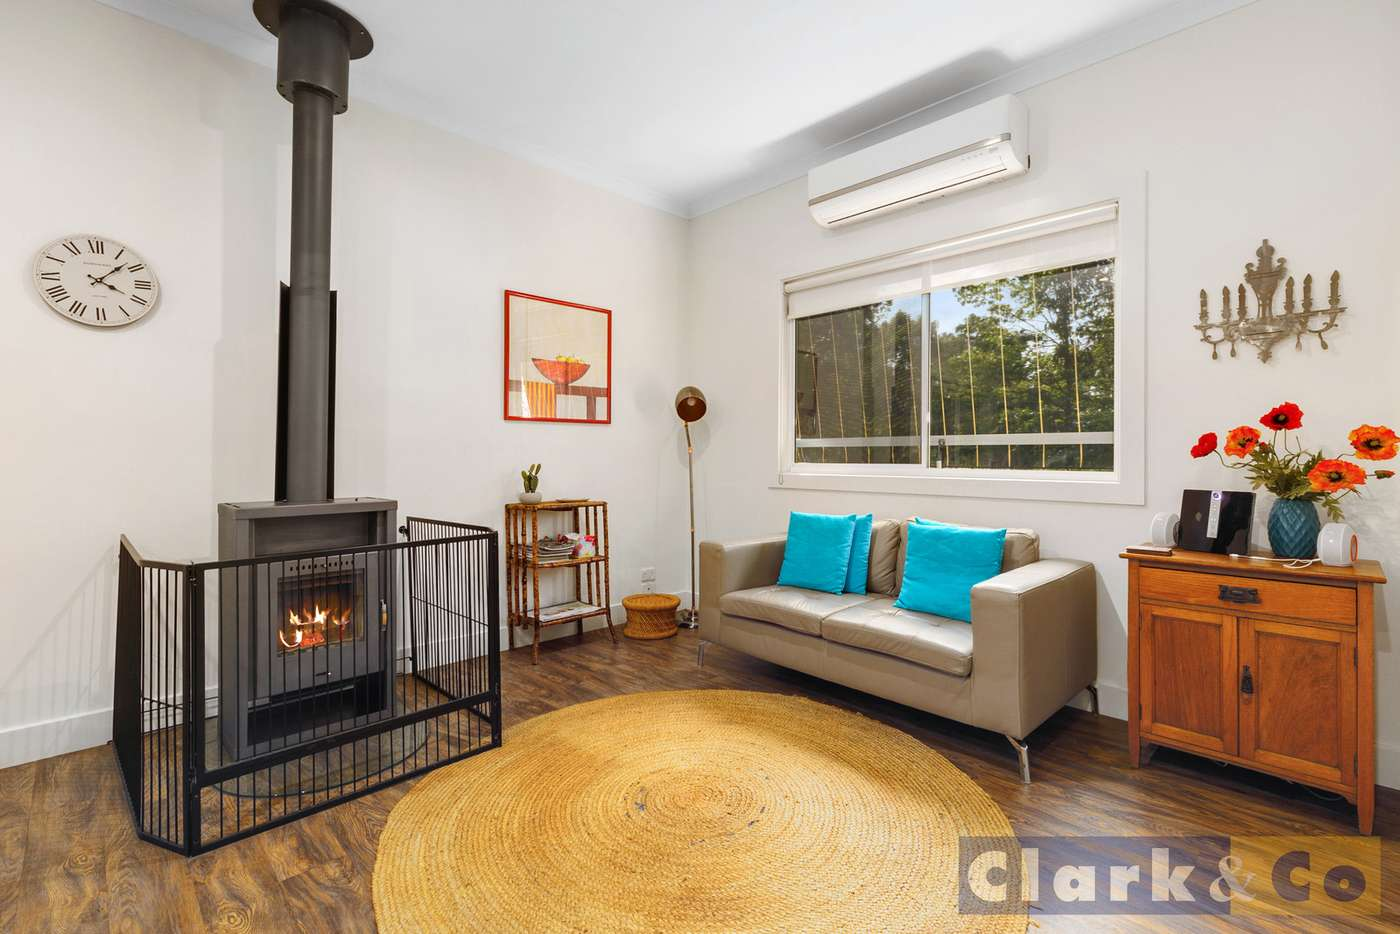 Sixth view of Homely house listing, 7 Rowe Street, Mansfield VIC 3722